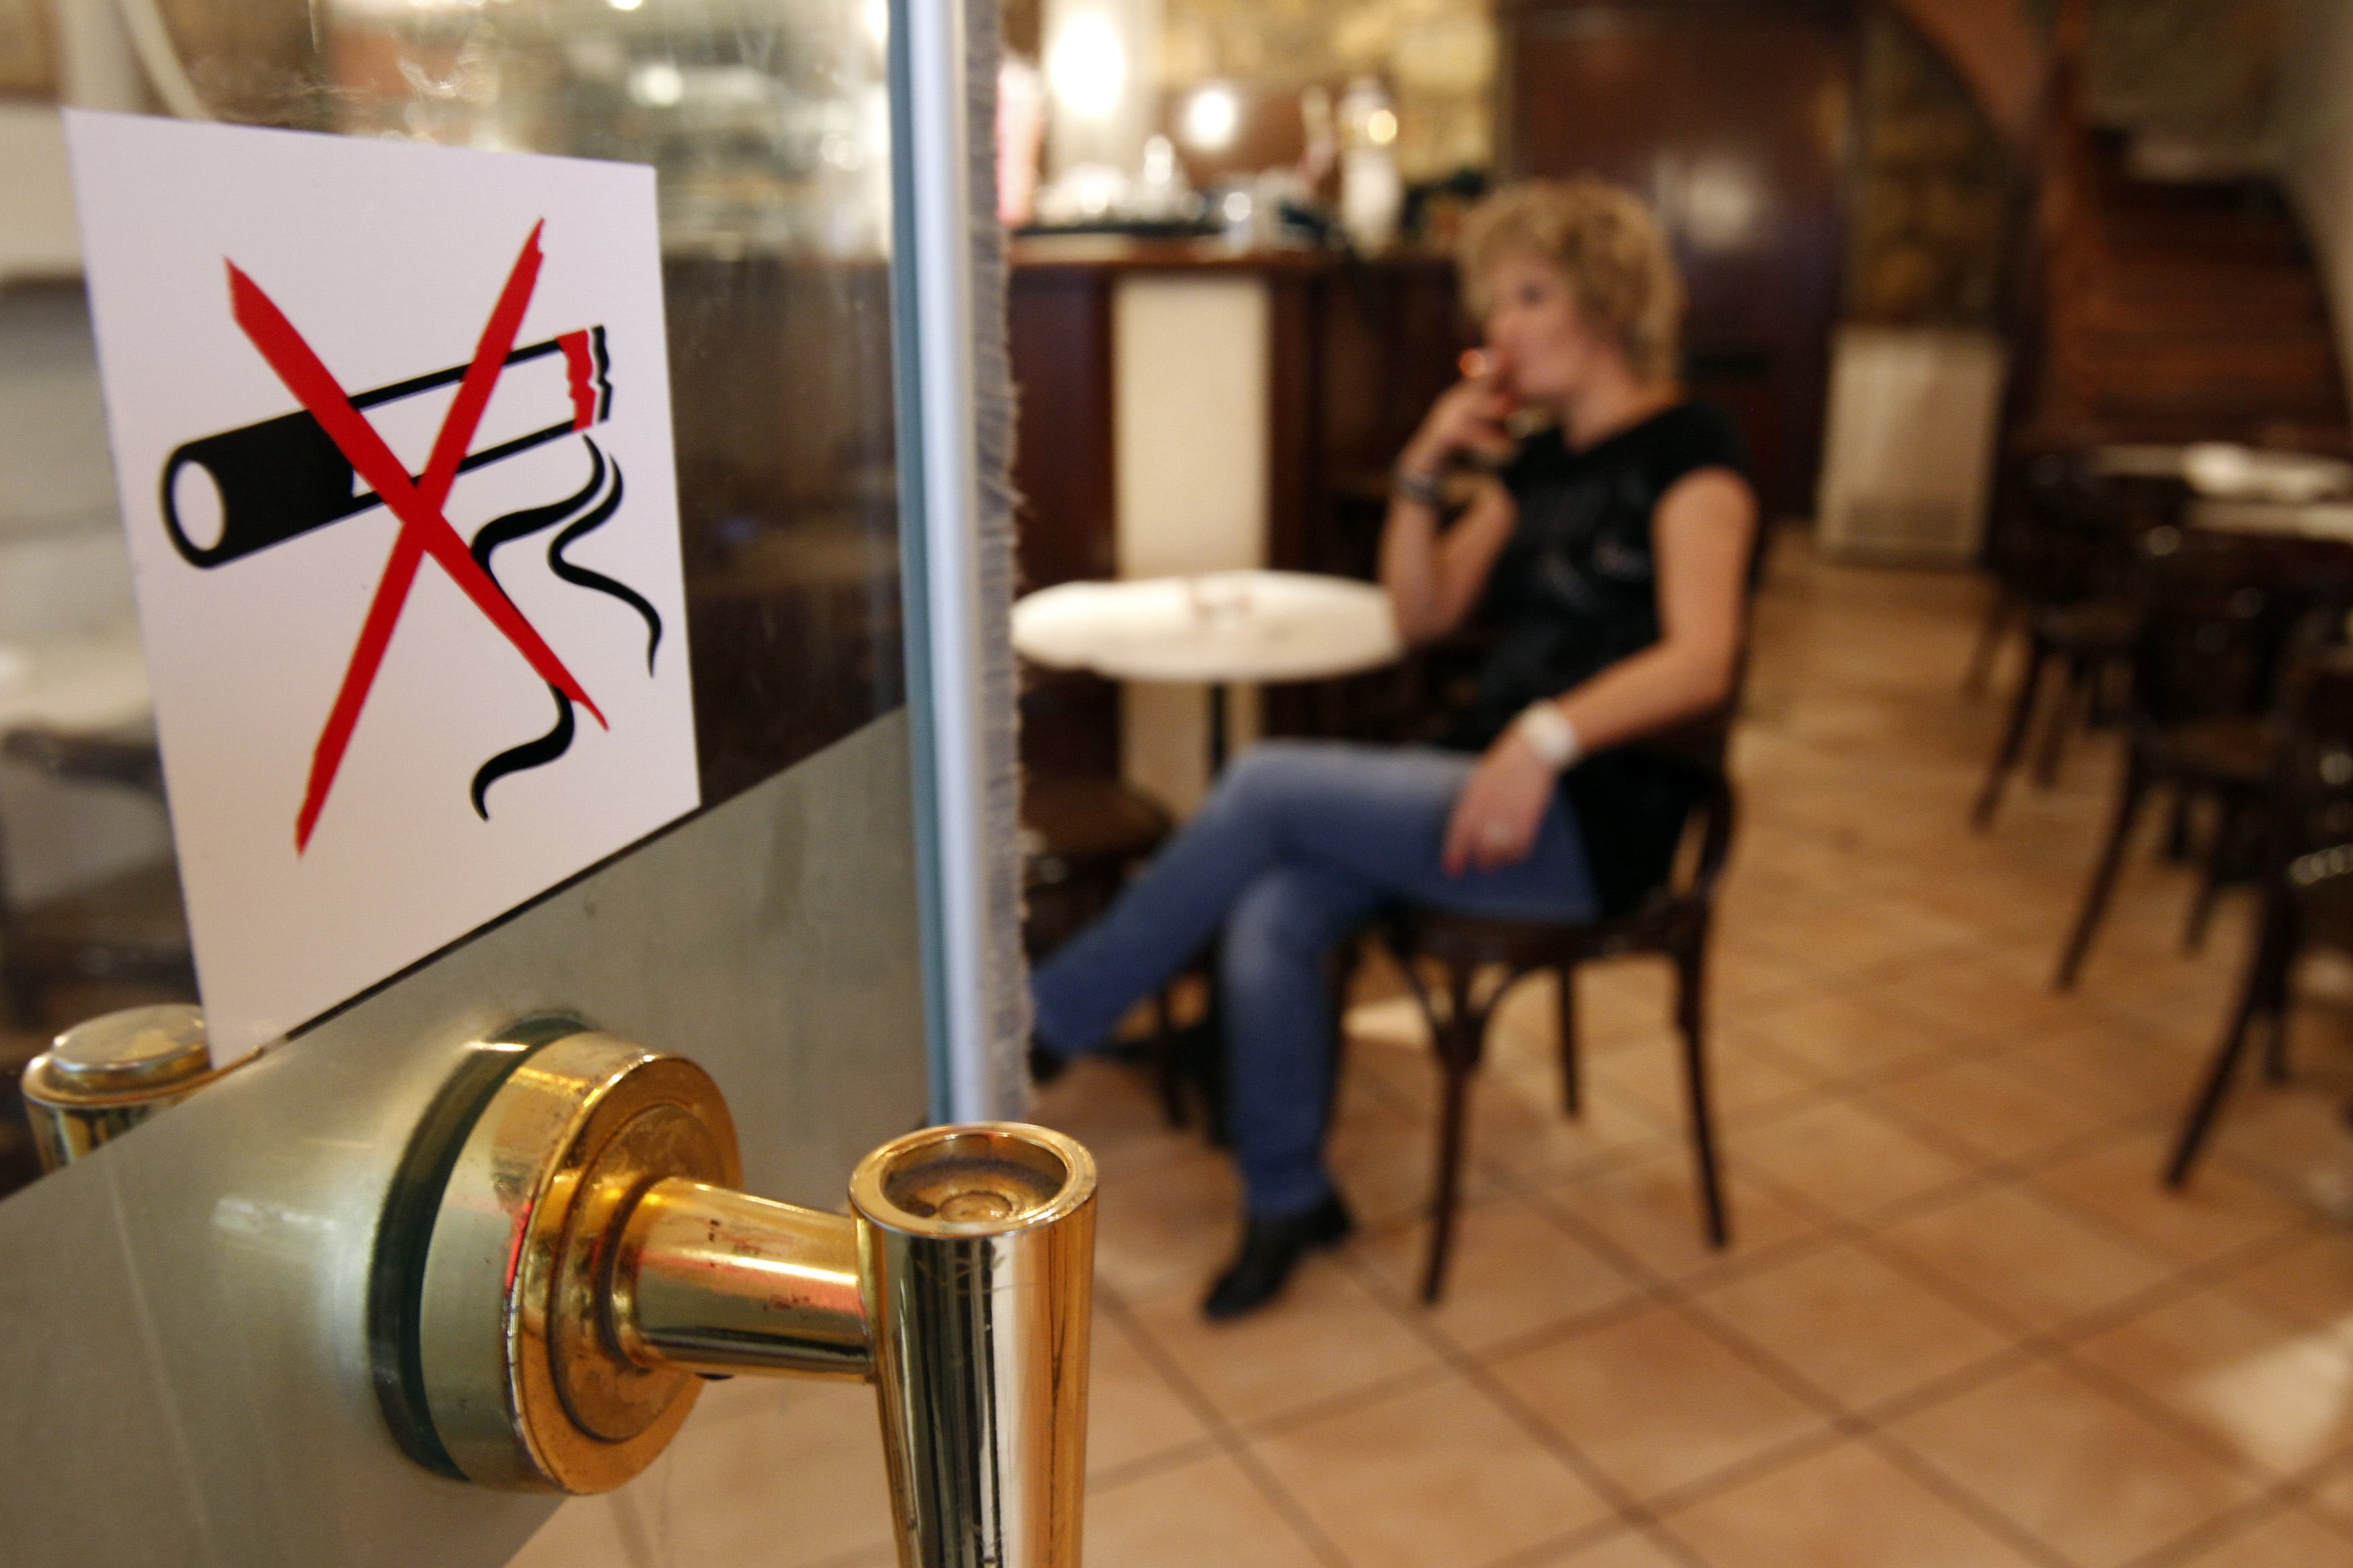 A woman smokes a cigarette behind a smoking ban sign in a restaurant-cafe in central Athens October 18, 2010. Businesses around Greece have decided to violate a smoking ban and have placed ashtrays back on tables and allow customers to smoke inside, despite the law and heavy fines, saying an economic crisis and smoking ban simultaneously is killing business. REUTERS/John Kolesidis (Greece - Tags: POLITICS SOCIETY)